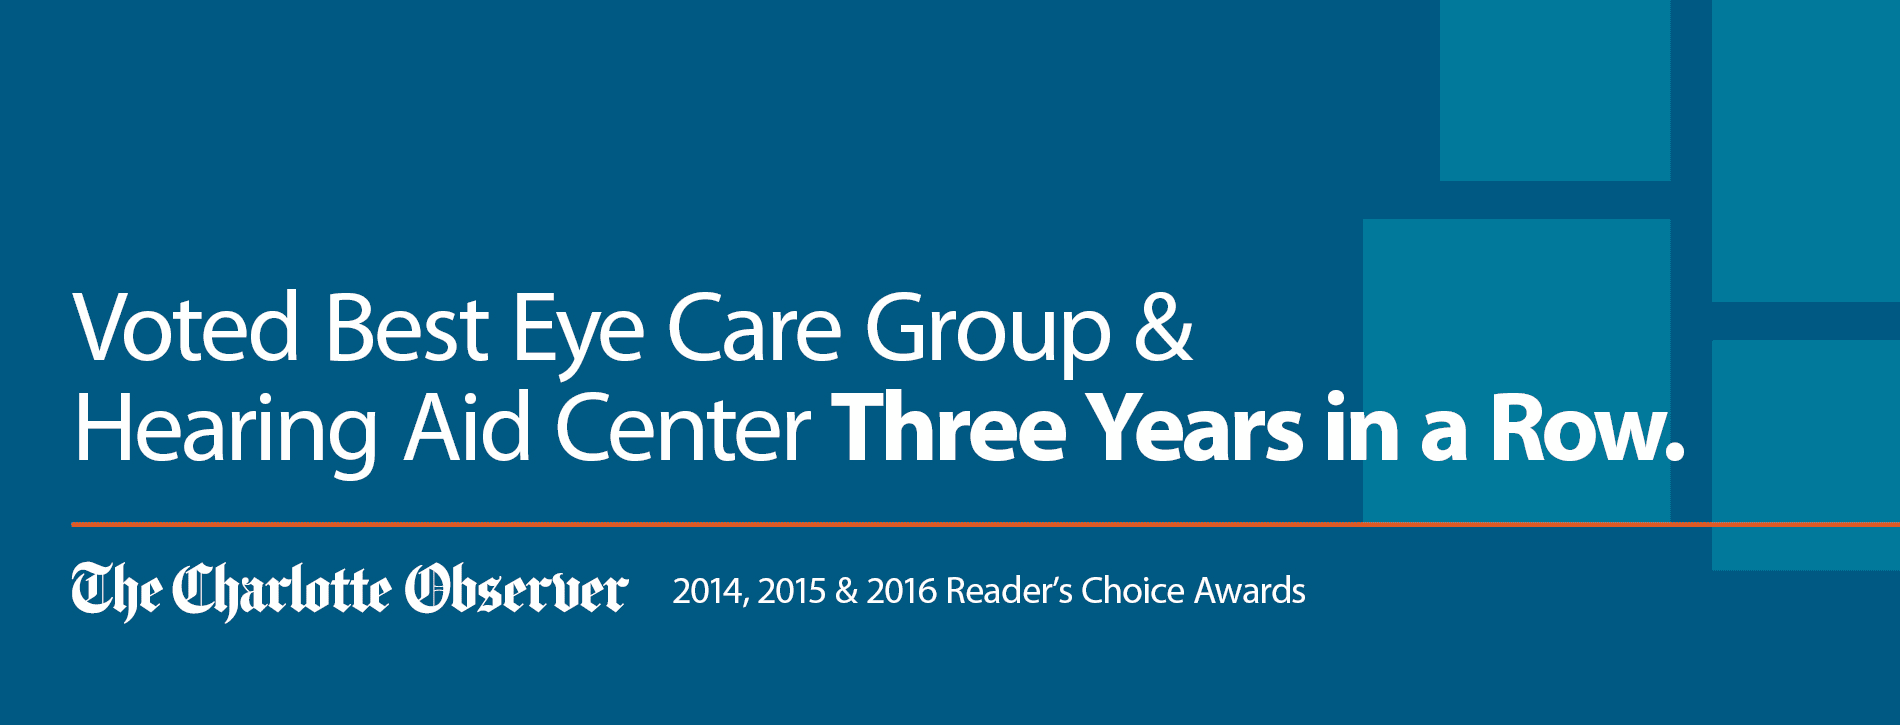 Readers Choice Award for Eye Care Group & Hearing Aid Center